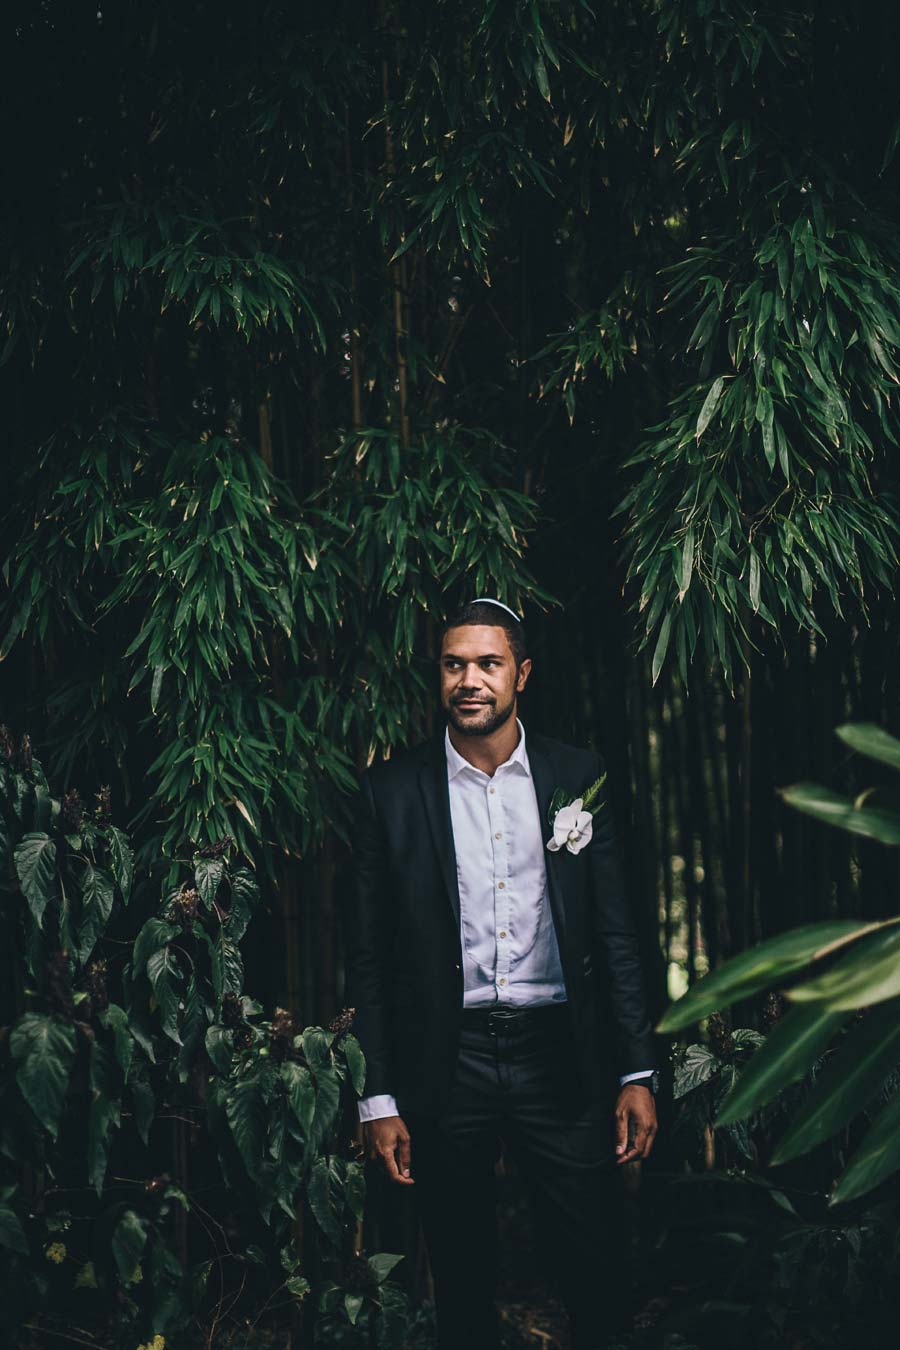 Melbourne royal botanical garden Jewish Wedding groom